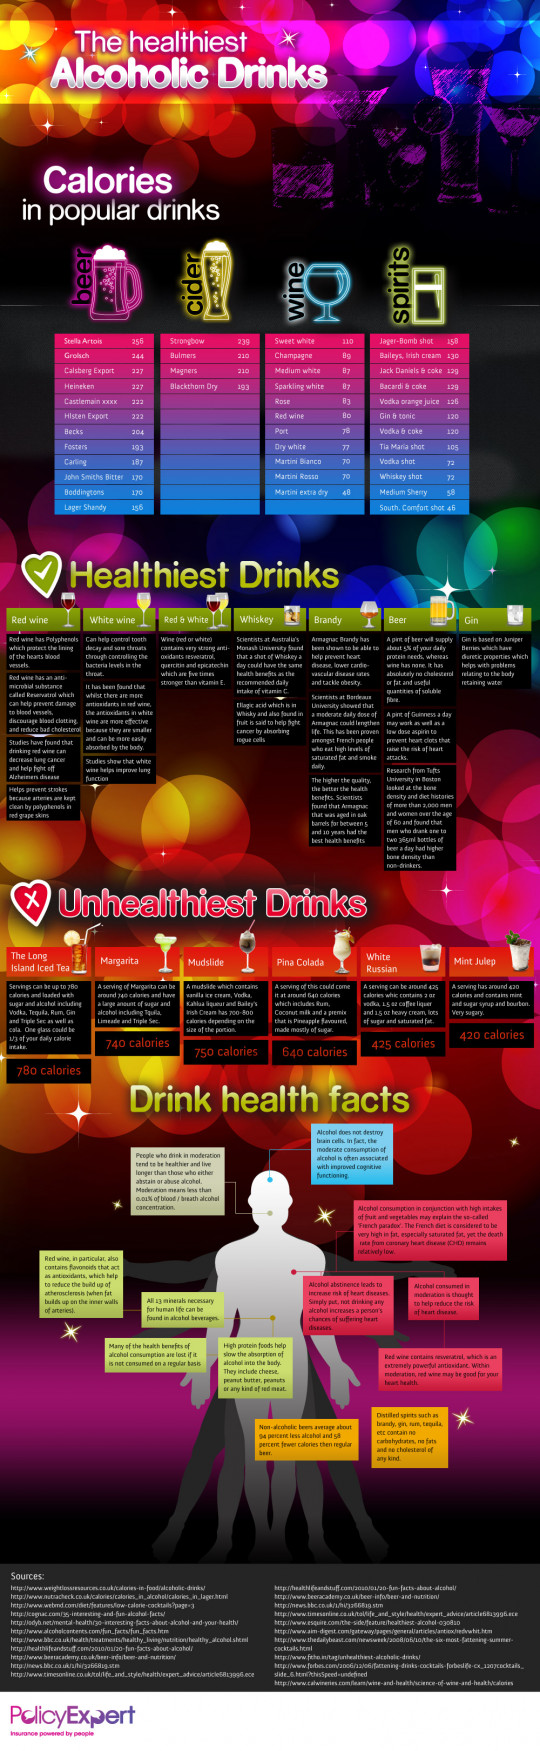 The Healthiest Alcoholic Drinks